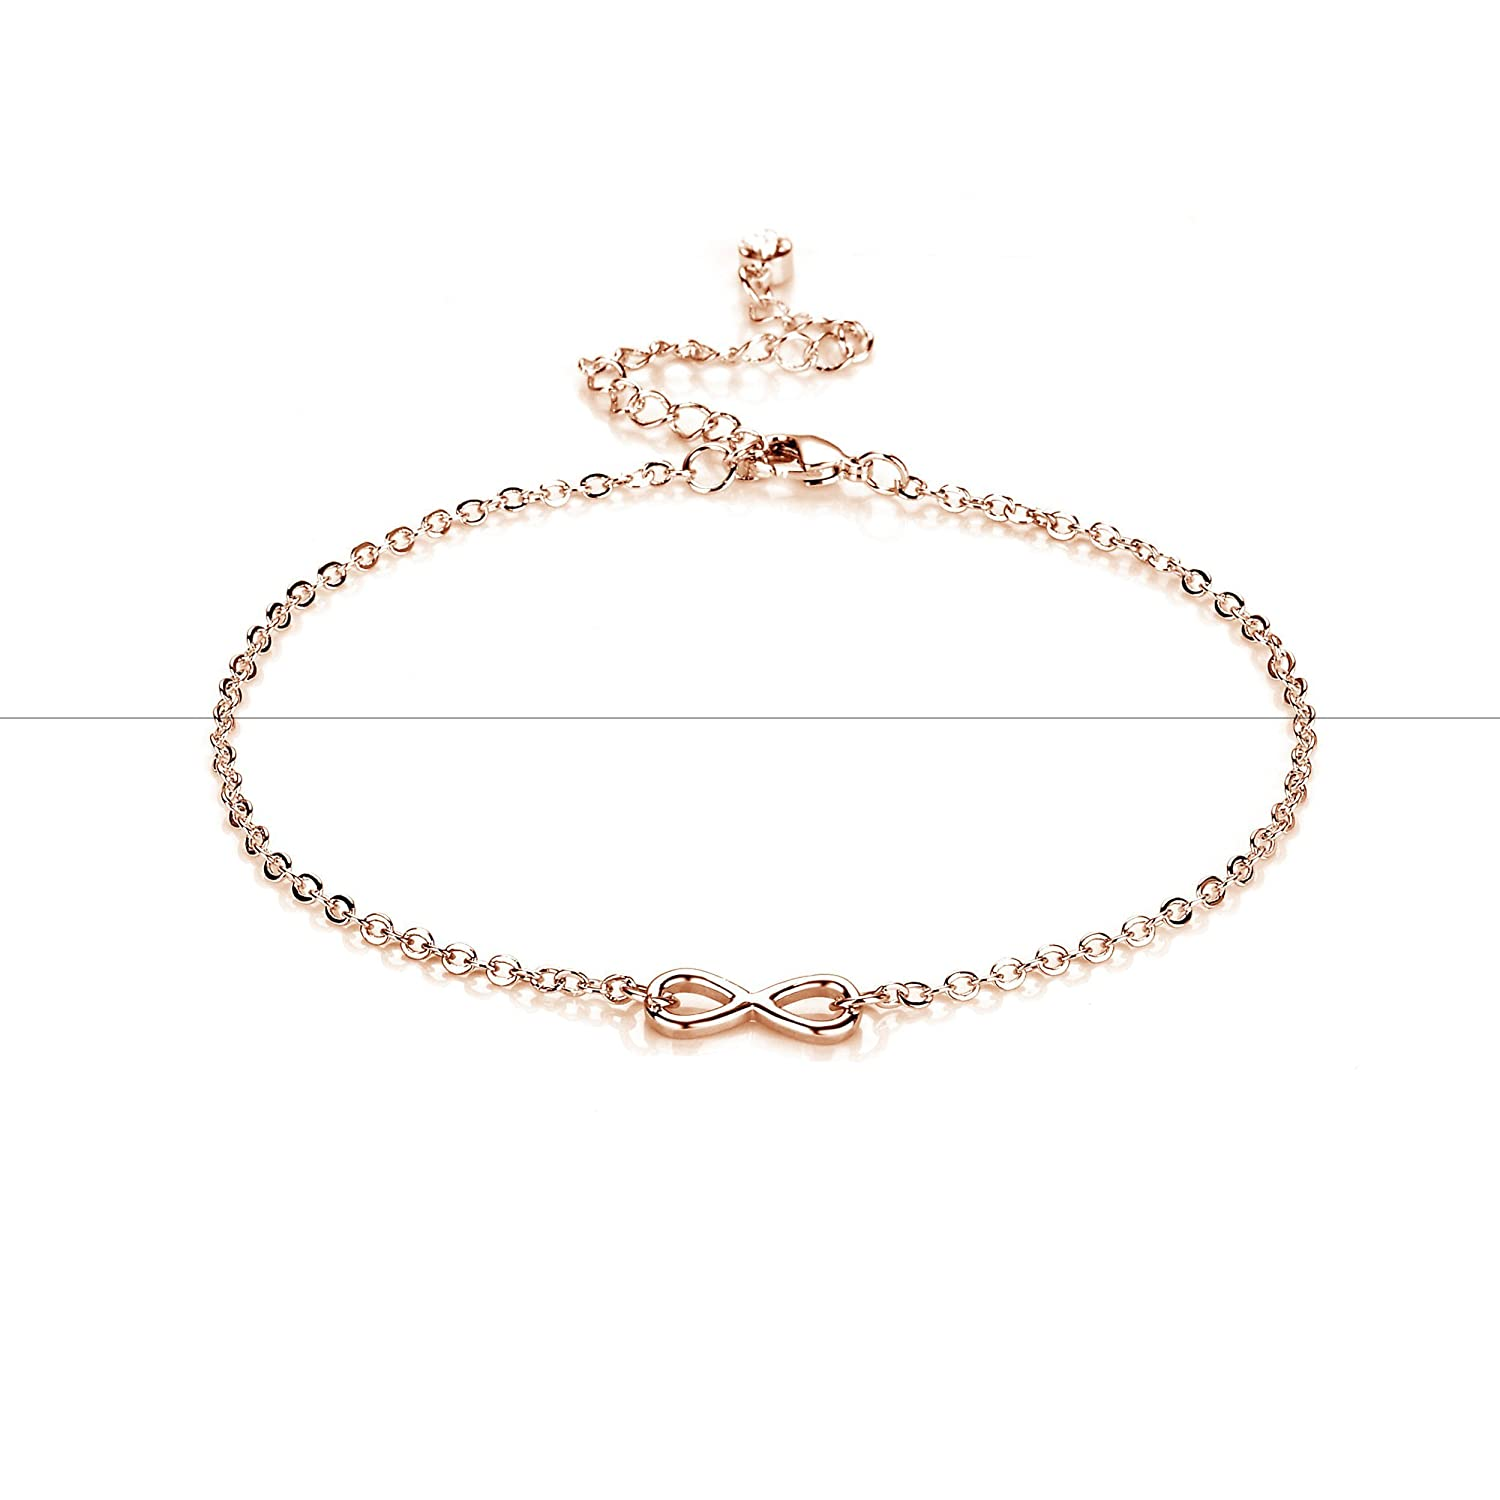 Rose Gold Infinity Anklet with Crystals from Swarovski Philip Jones